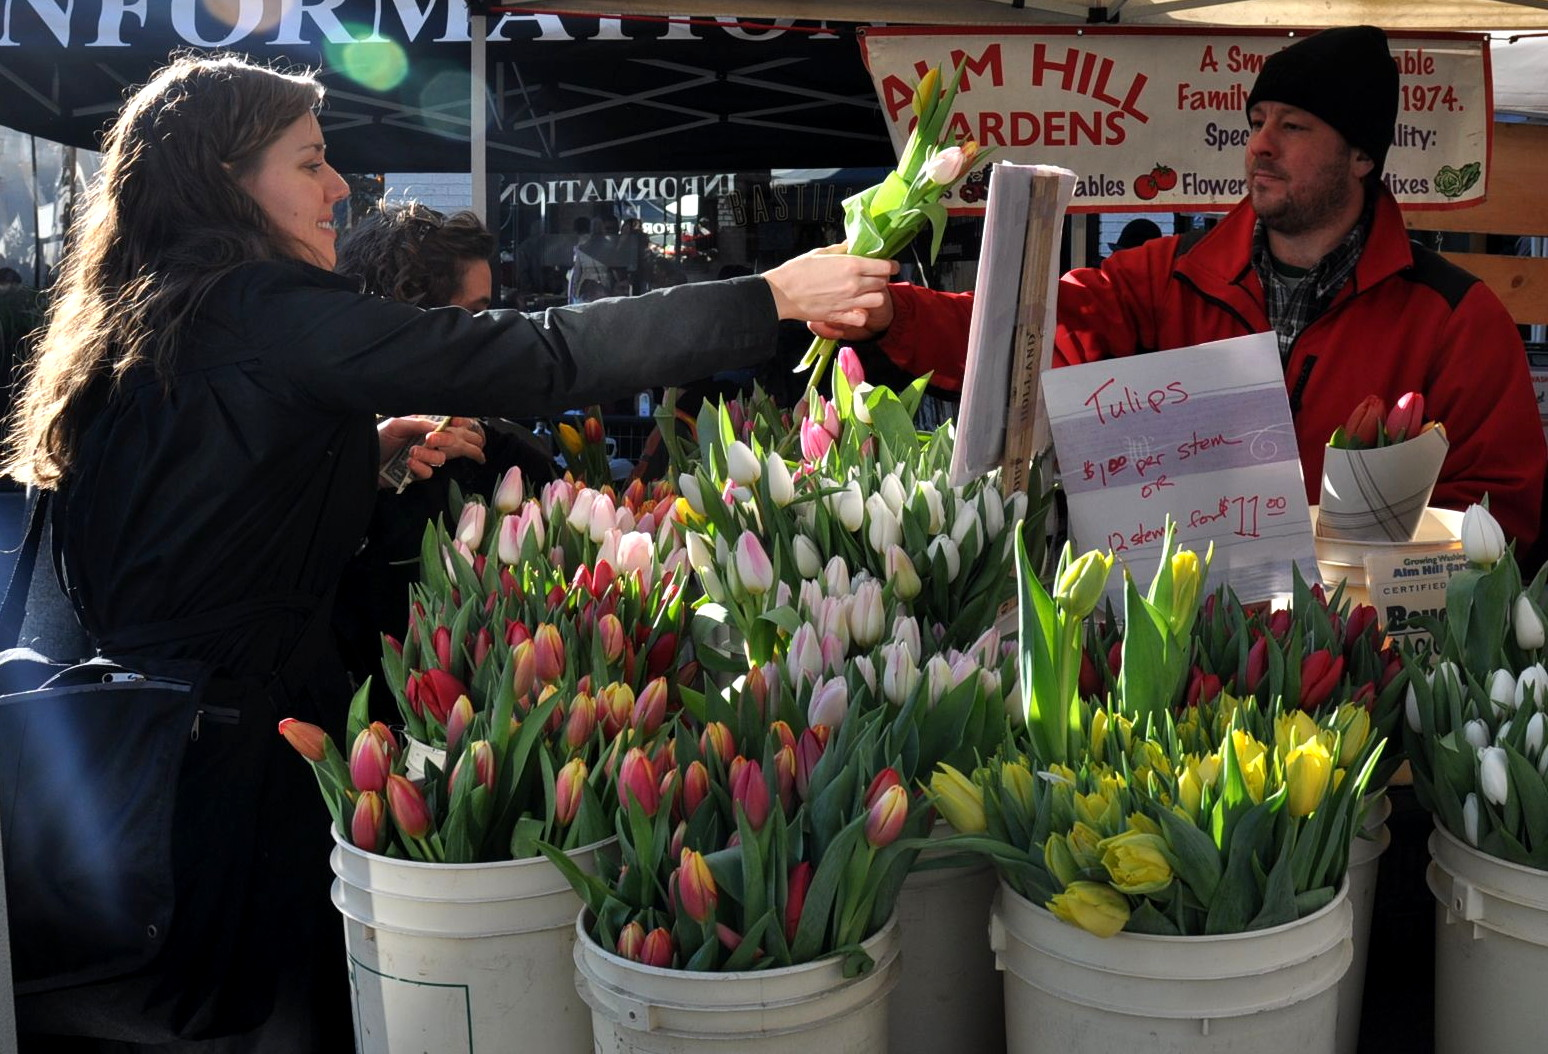 Fresh cut tulips from Alm Hill. Photo copyright 2011 by Zachary D. Lyons.